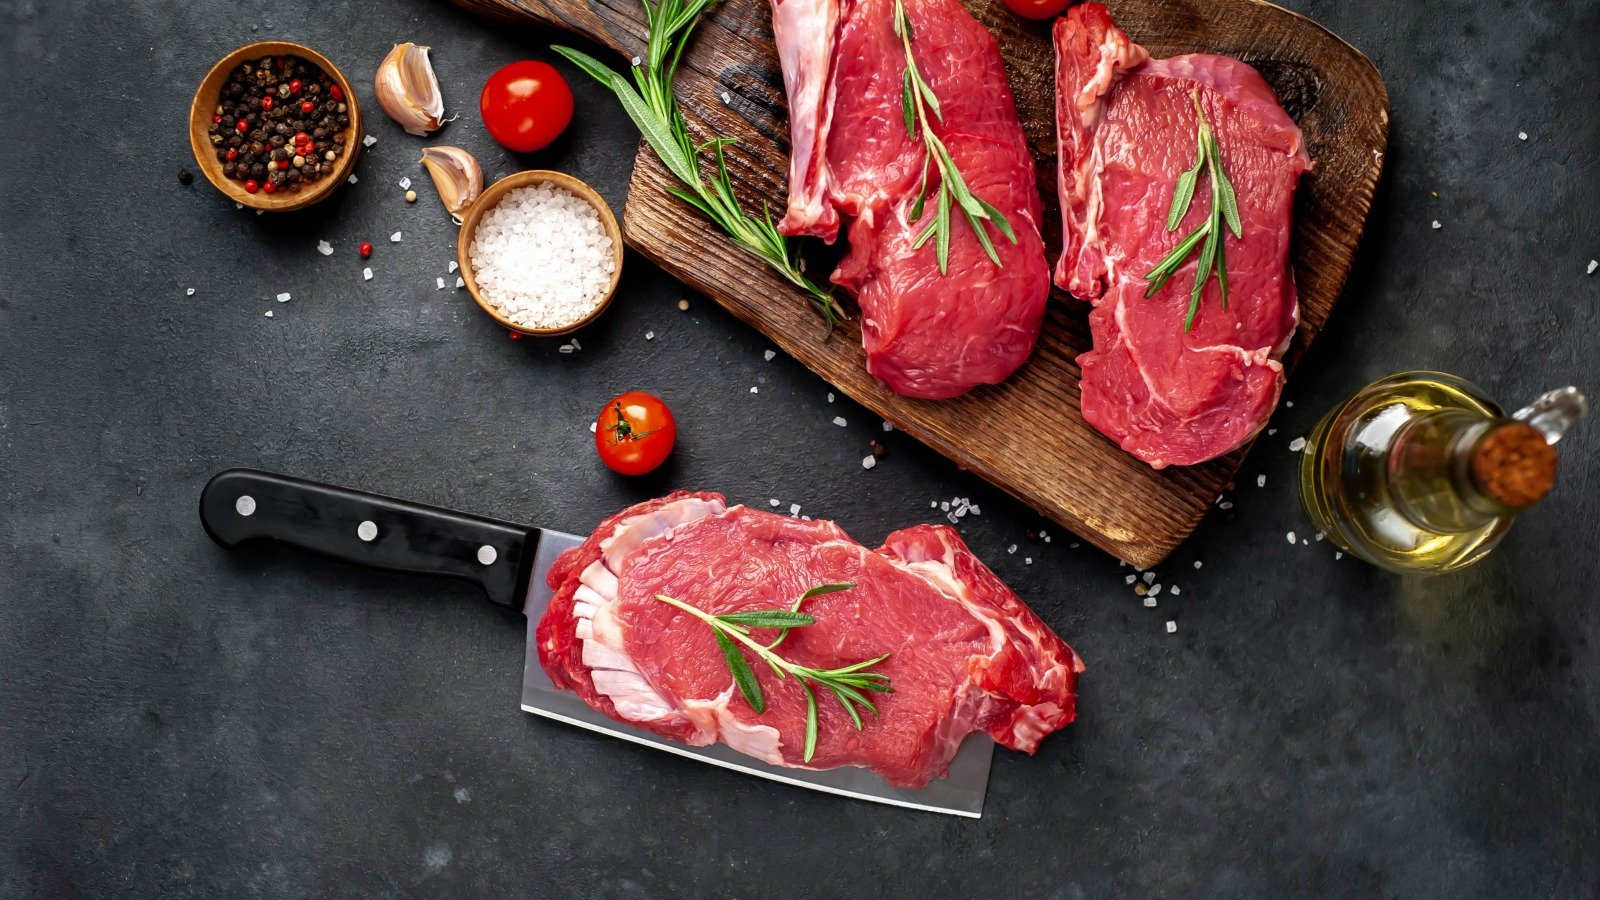 Cuts Of Meat You Should Never Put In Your Body